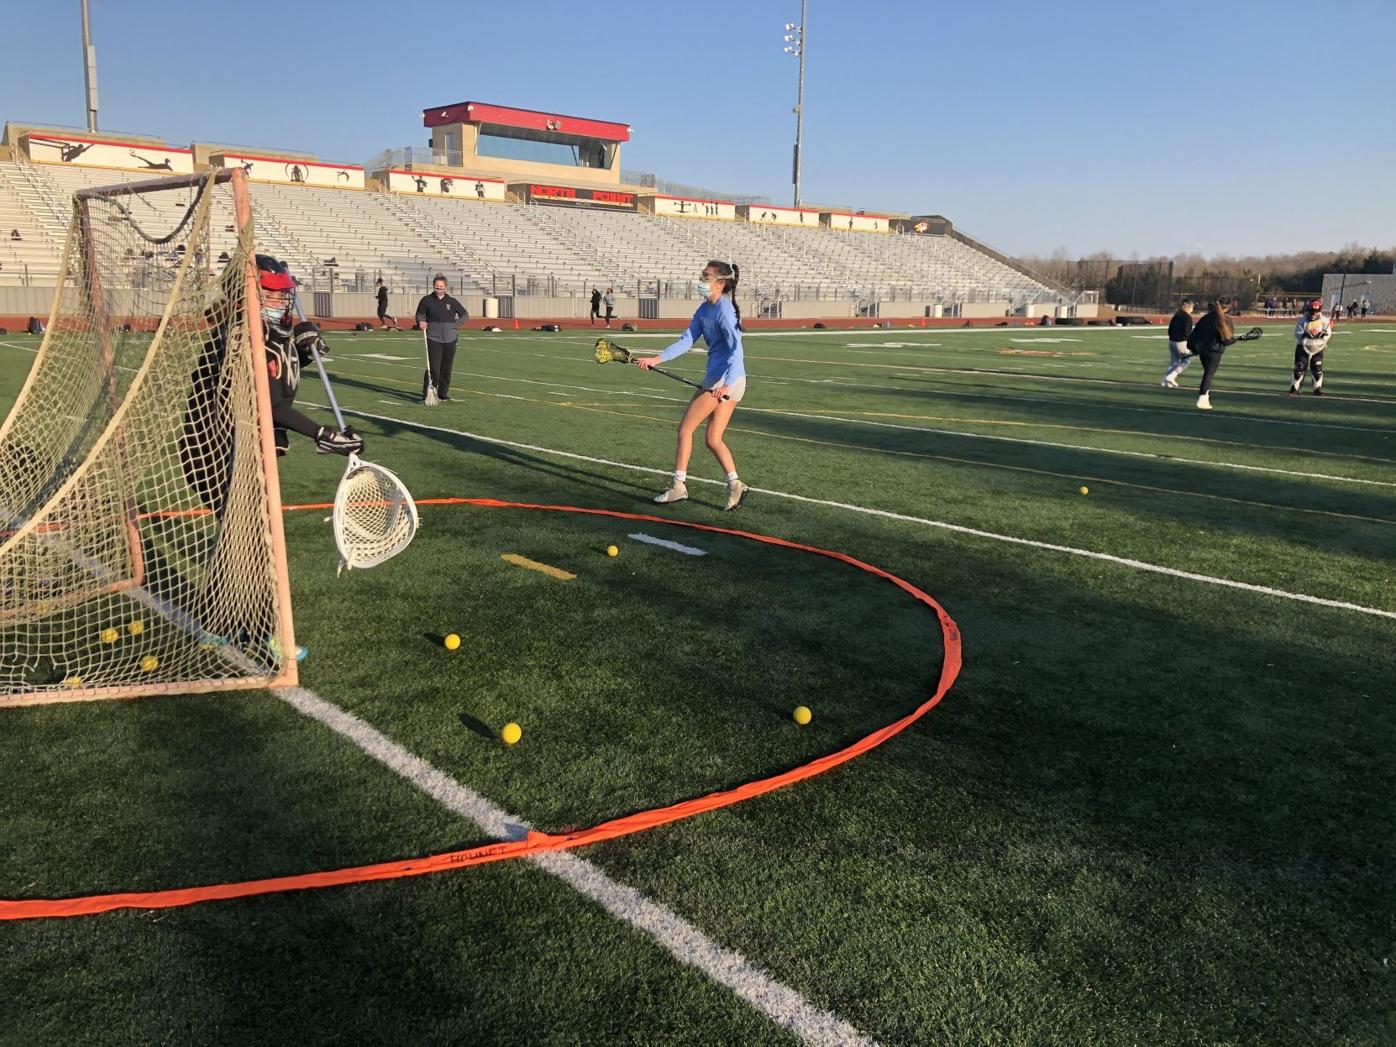 Charles County schools preparing for spring sports